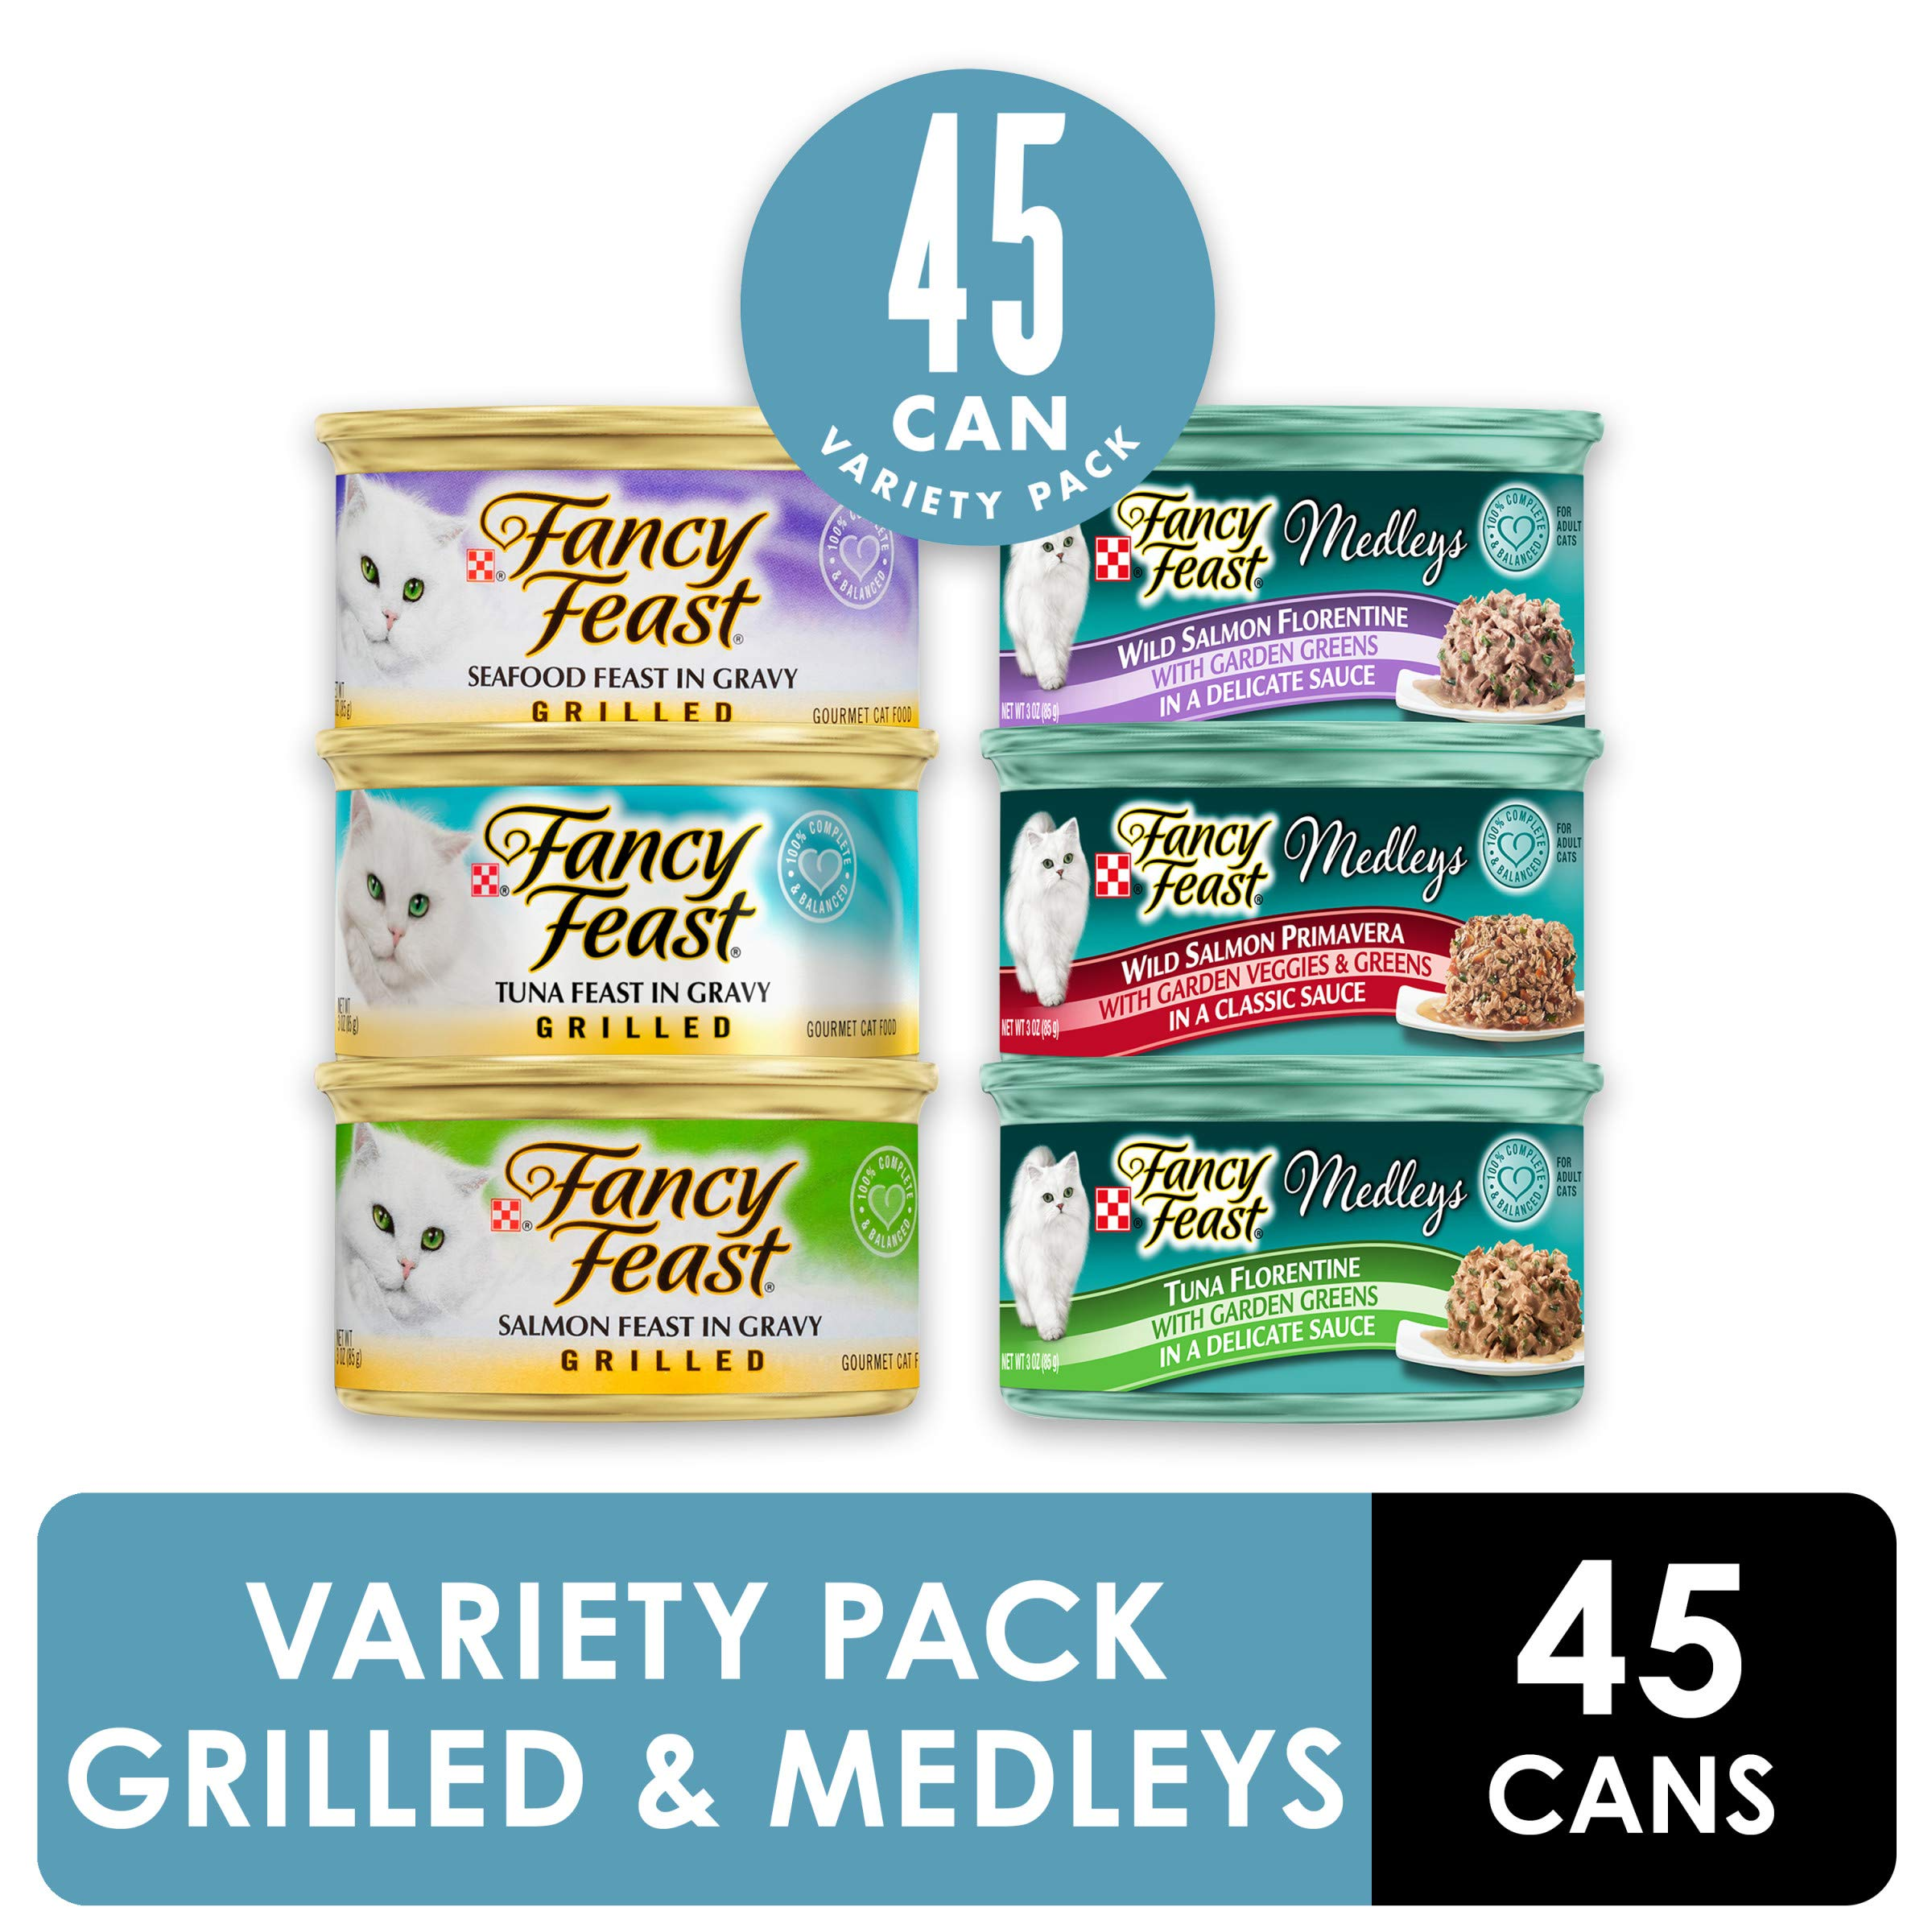 Purina Fancy Feast Wet Cat Food Variety Pack, Grilled Feast & Medleys Seafood Collection - (45) 3 oz. Cans by Purina Fancy Feast